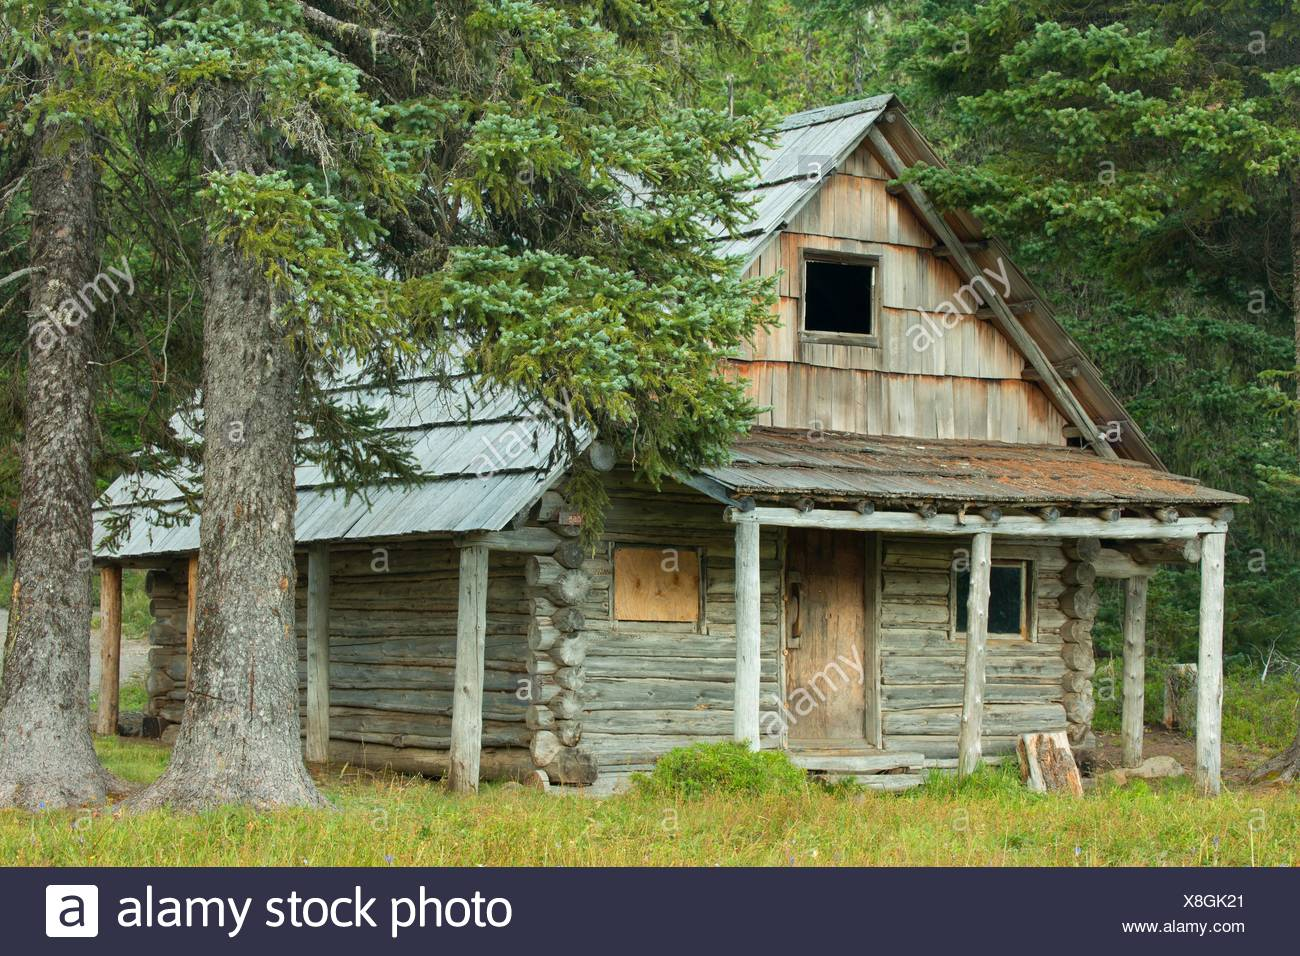 s a cabin cabins on the hewn hood in log hand oregon poster of foothills steiner mount